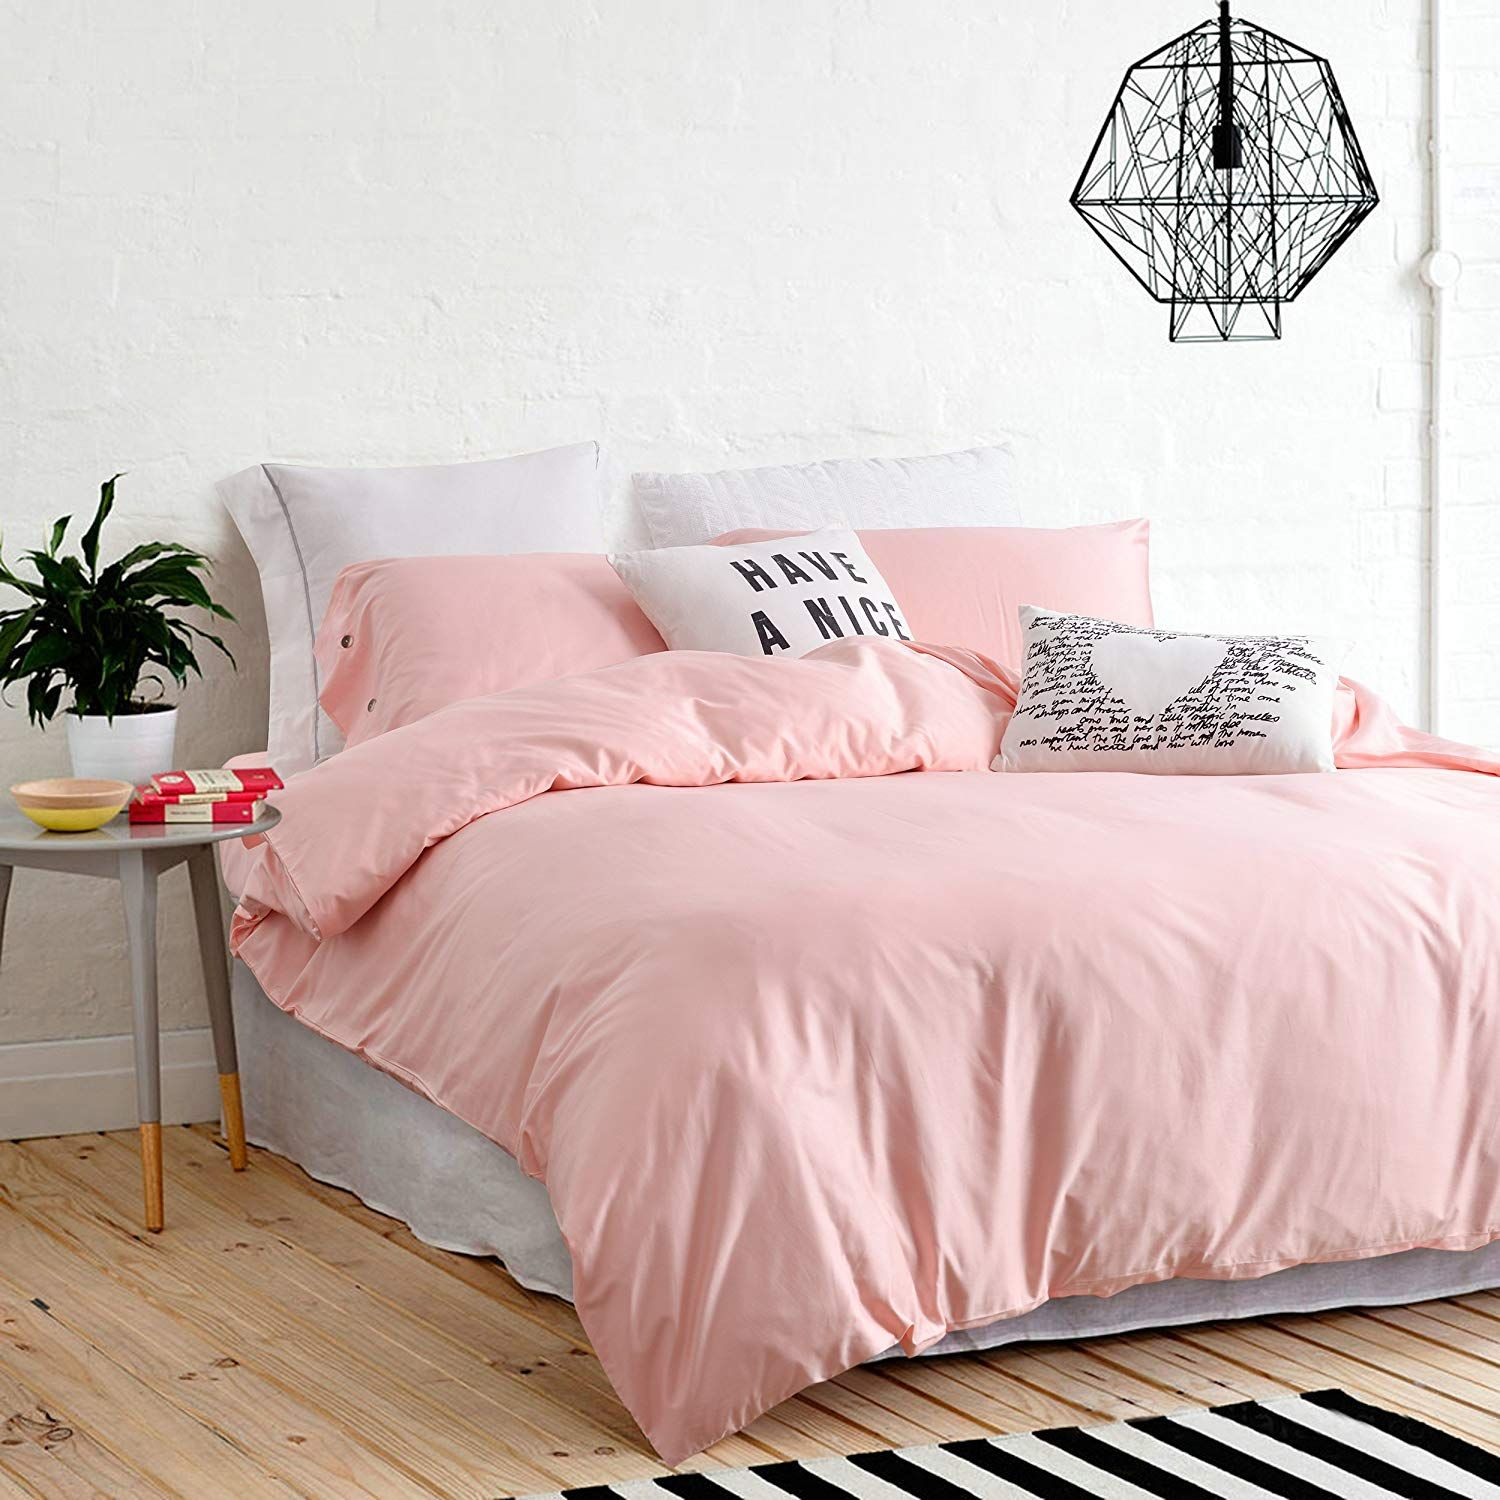 UFO Home 300 Thread Count 100% Cotton Sateen Light Pink Solid Color Pretty Girly Type 4pc Duvet Cover Set Full/Queen Size (Queen size, Pink) images